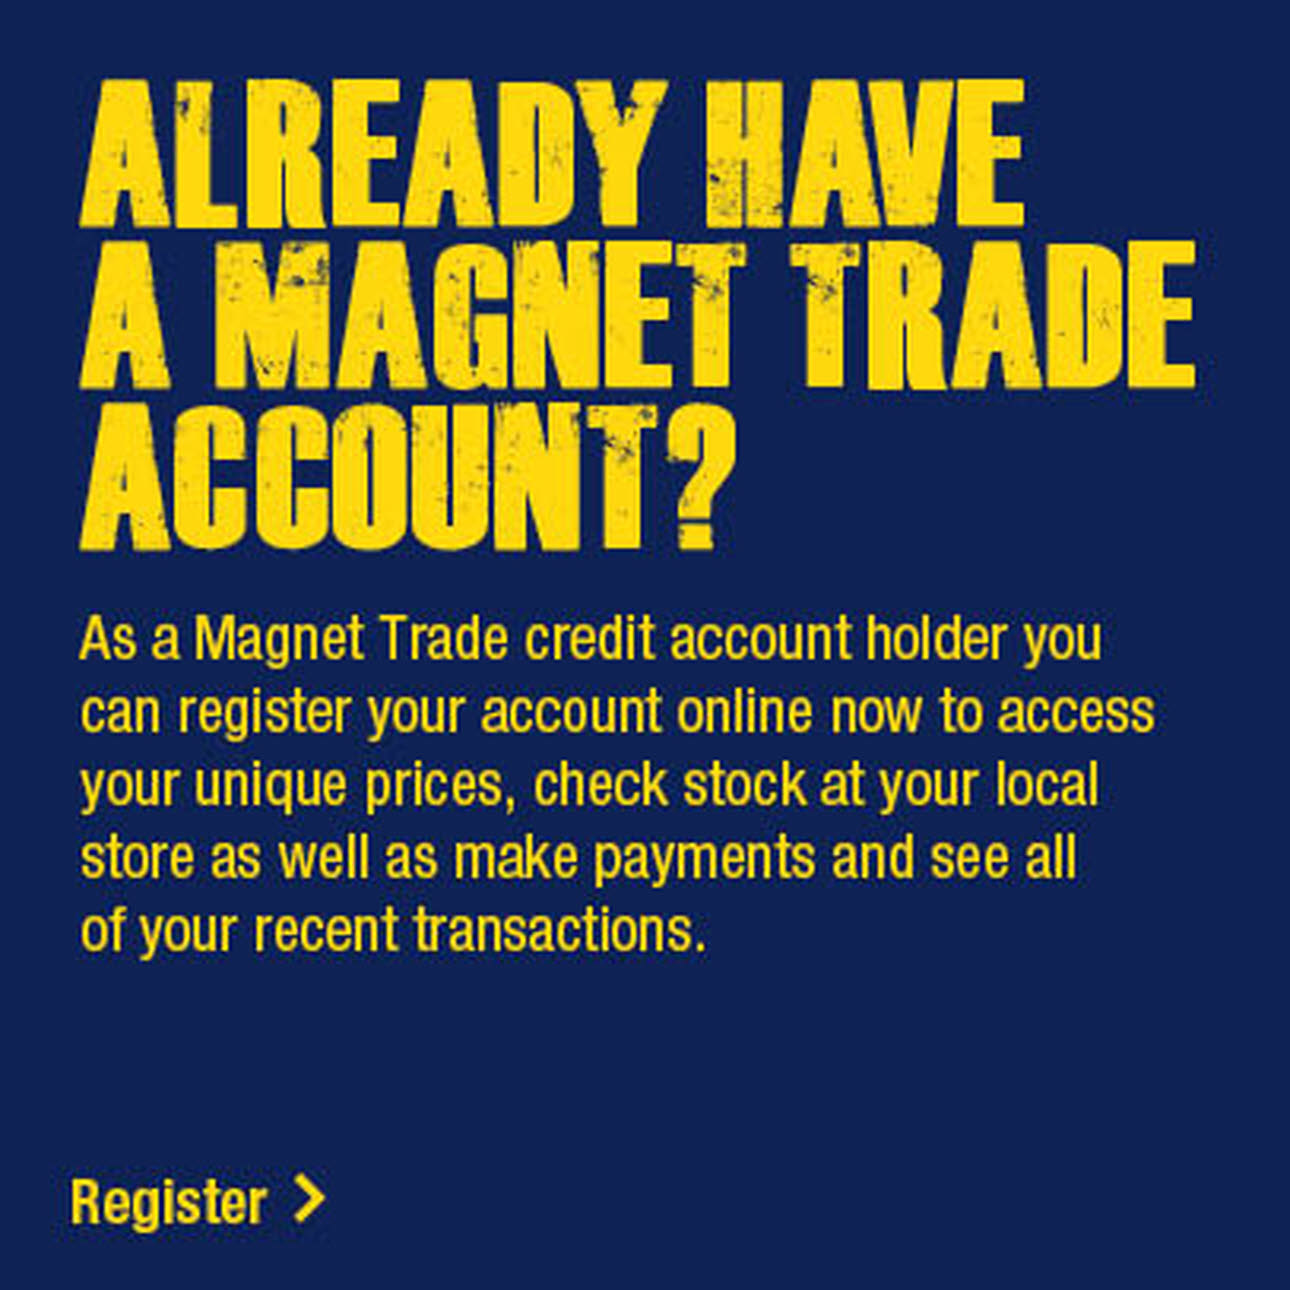 Information for Magnet Trade Account Holders